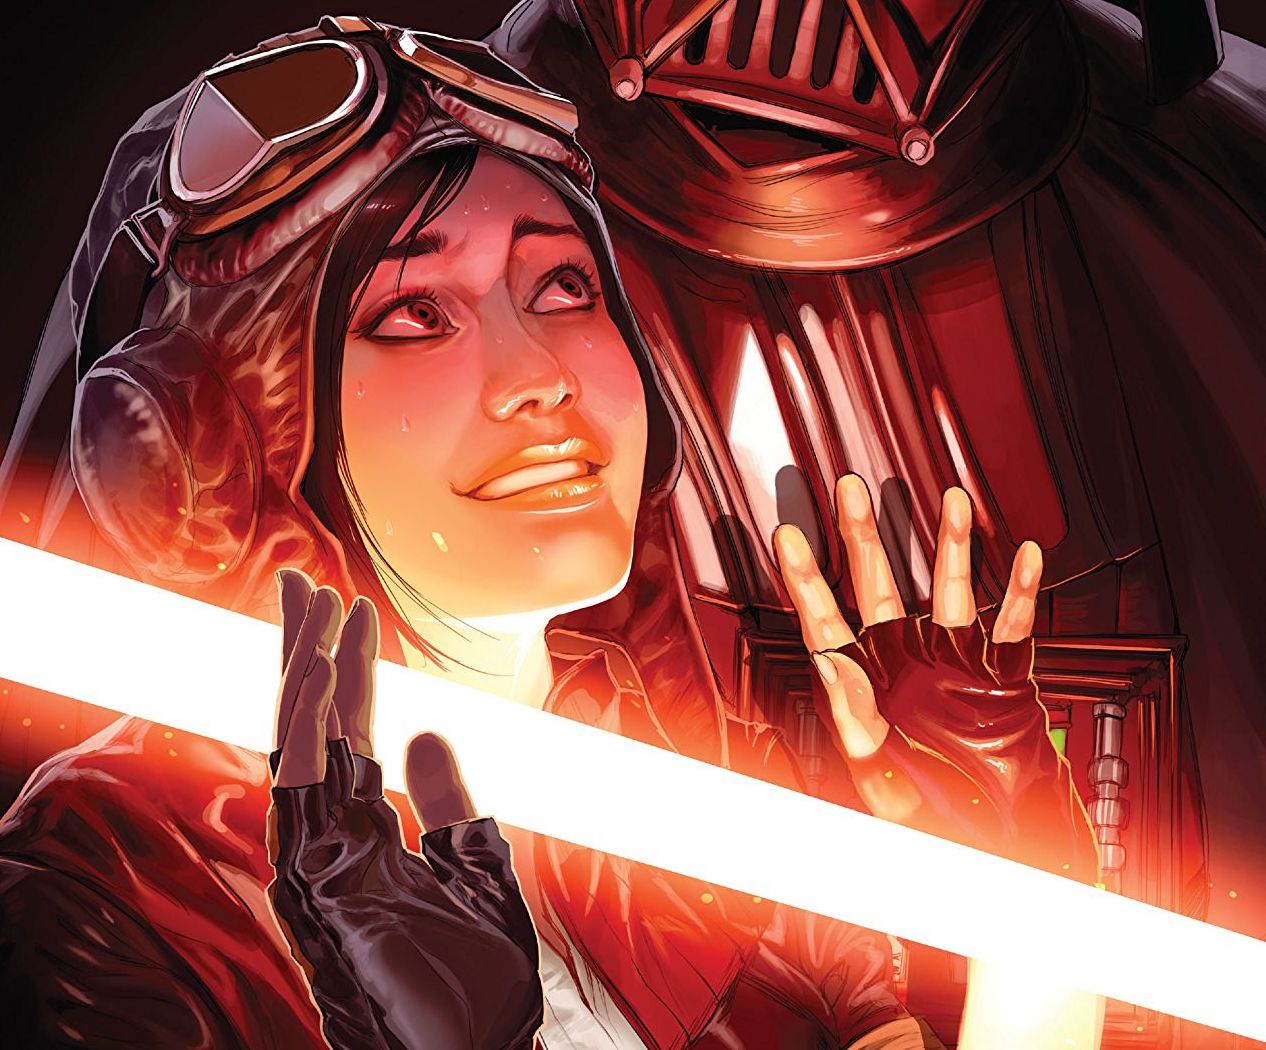 Star Wars: Doctor Aphra Vol. 7: A Rogue's End review